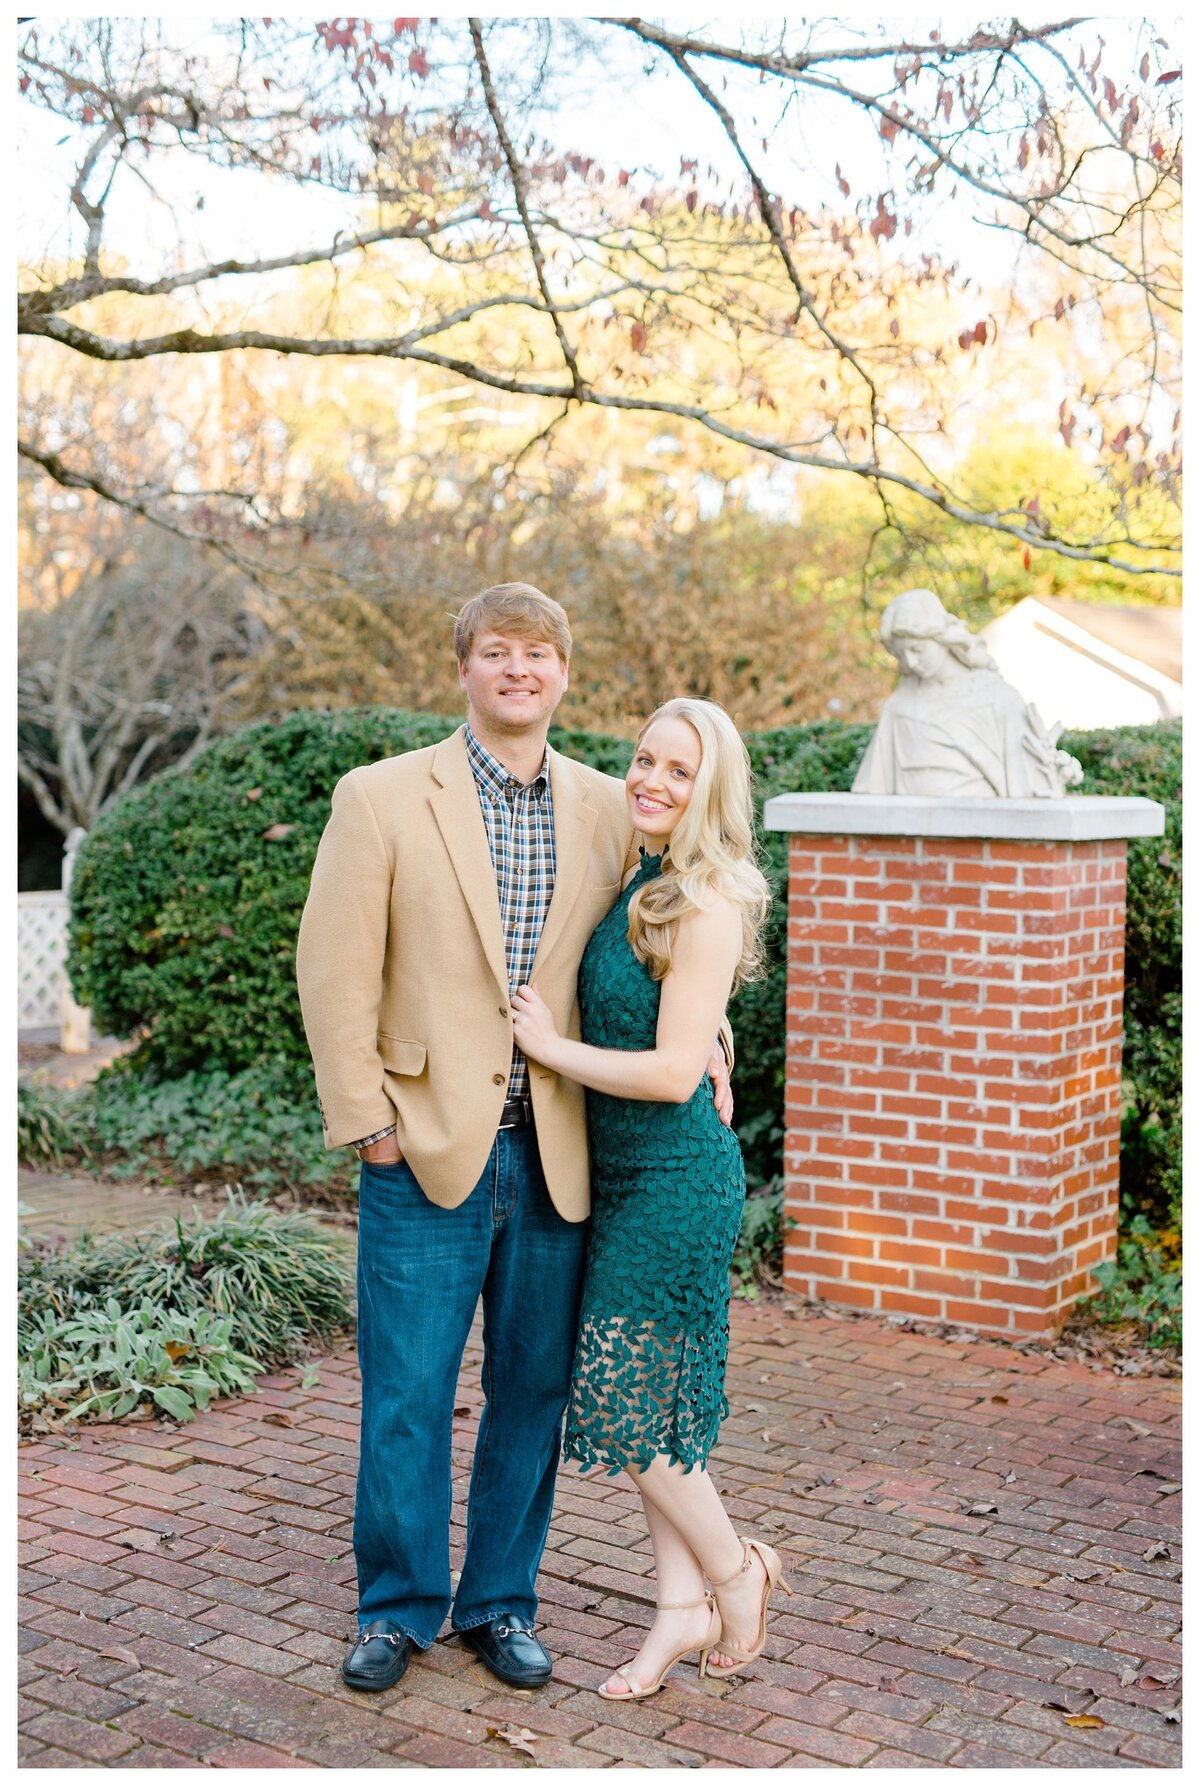 canady-engagements-atlanta-wedding-photographer-21